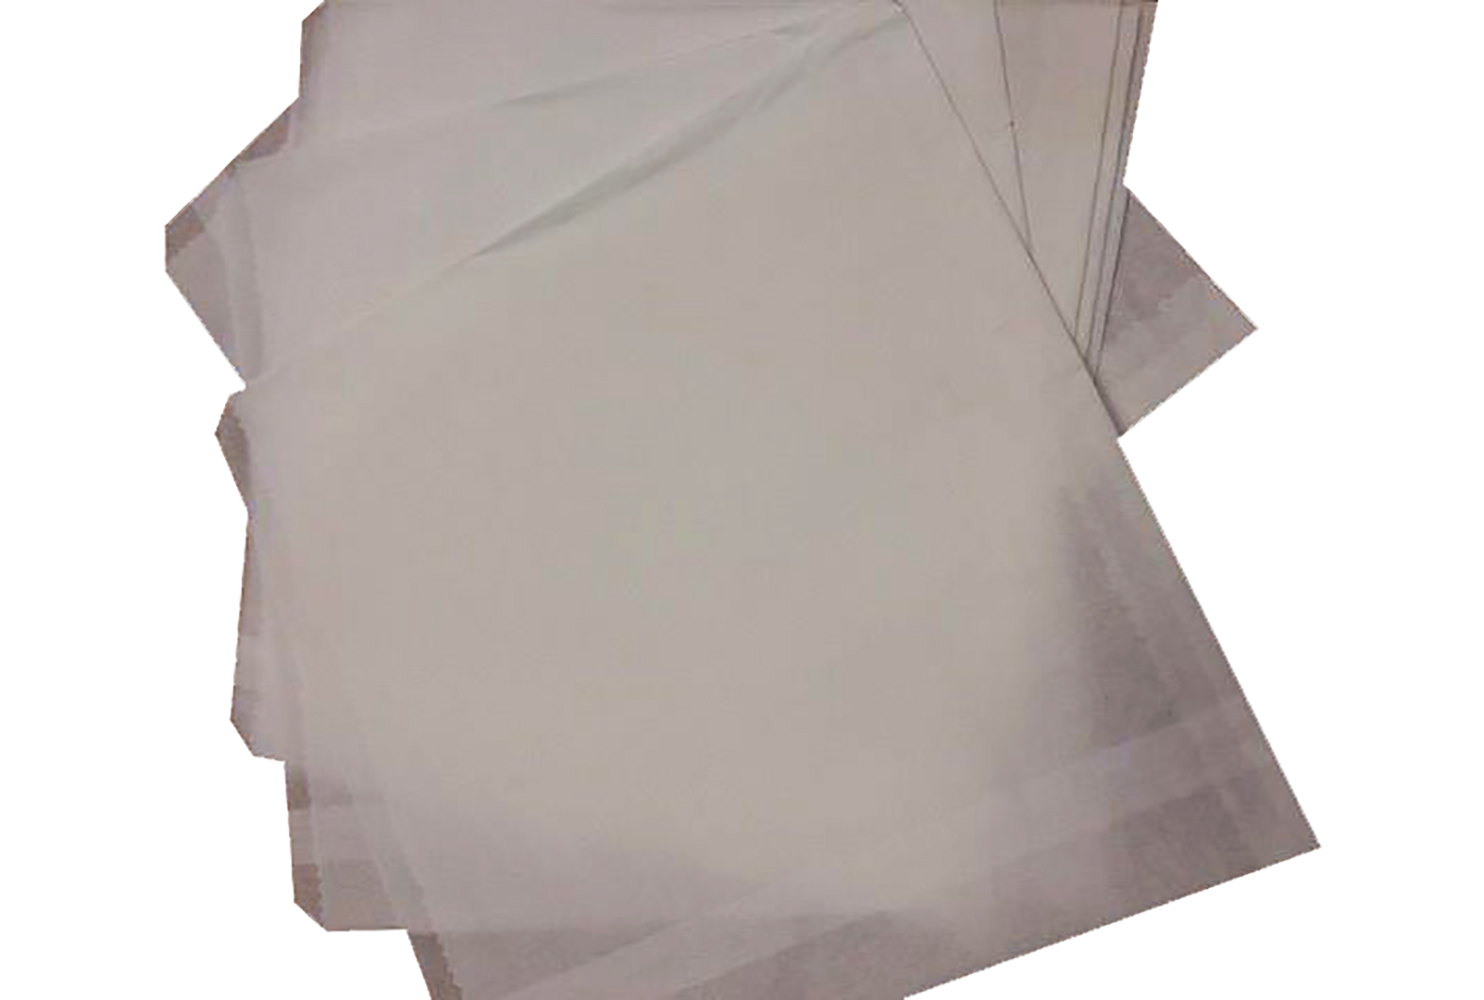 IMITATION GREASE PROOF BAGS 10X10